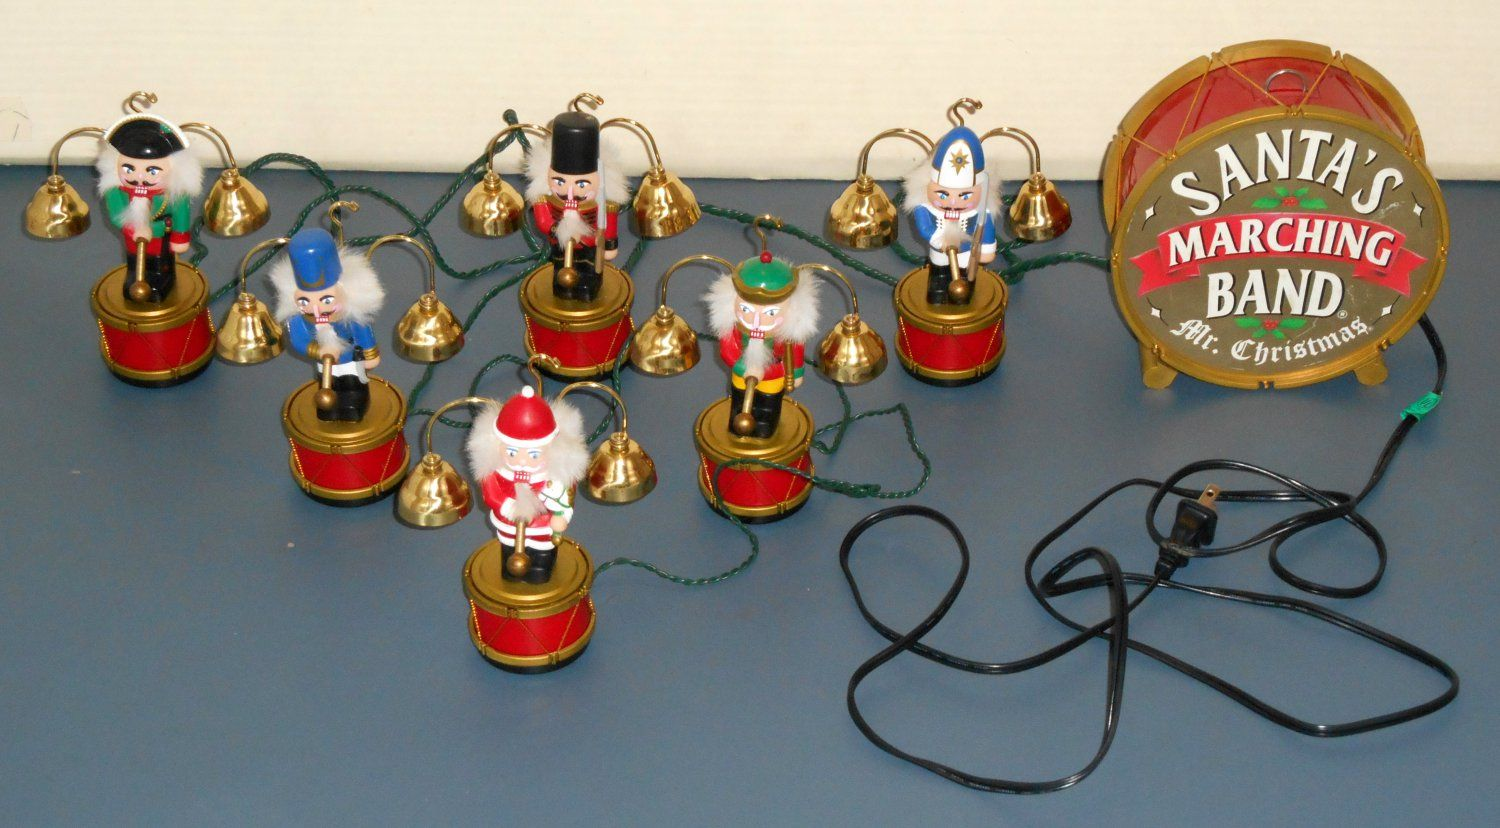 For Sale Mr Christmas Santa S Marching Band Animated